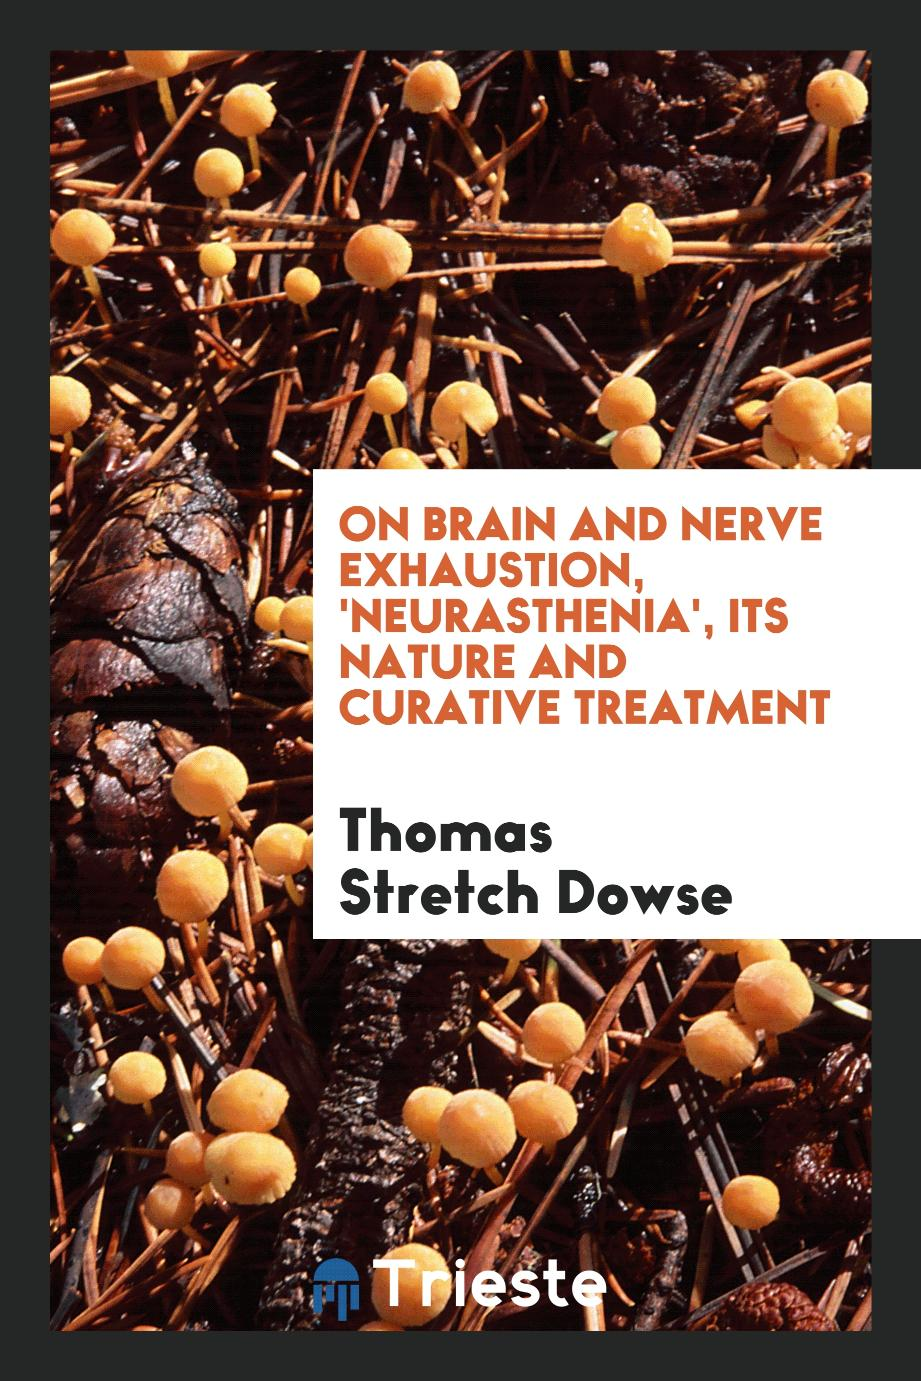 On Brain and Nerve Exhaustion, 'neurasthenia', Its Nature and Curative Treatment